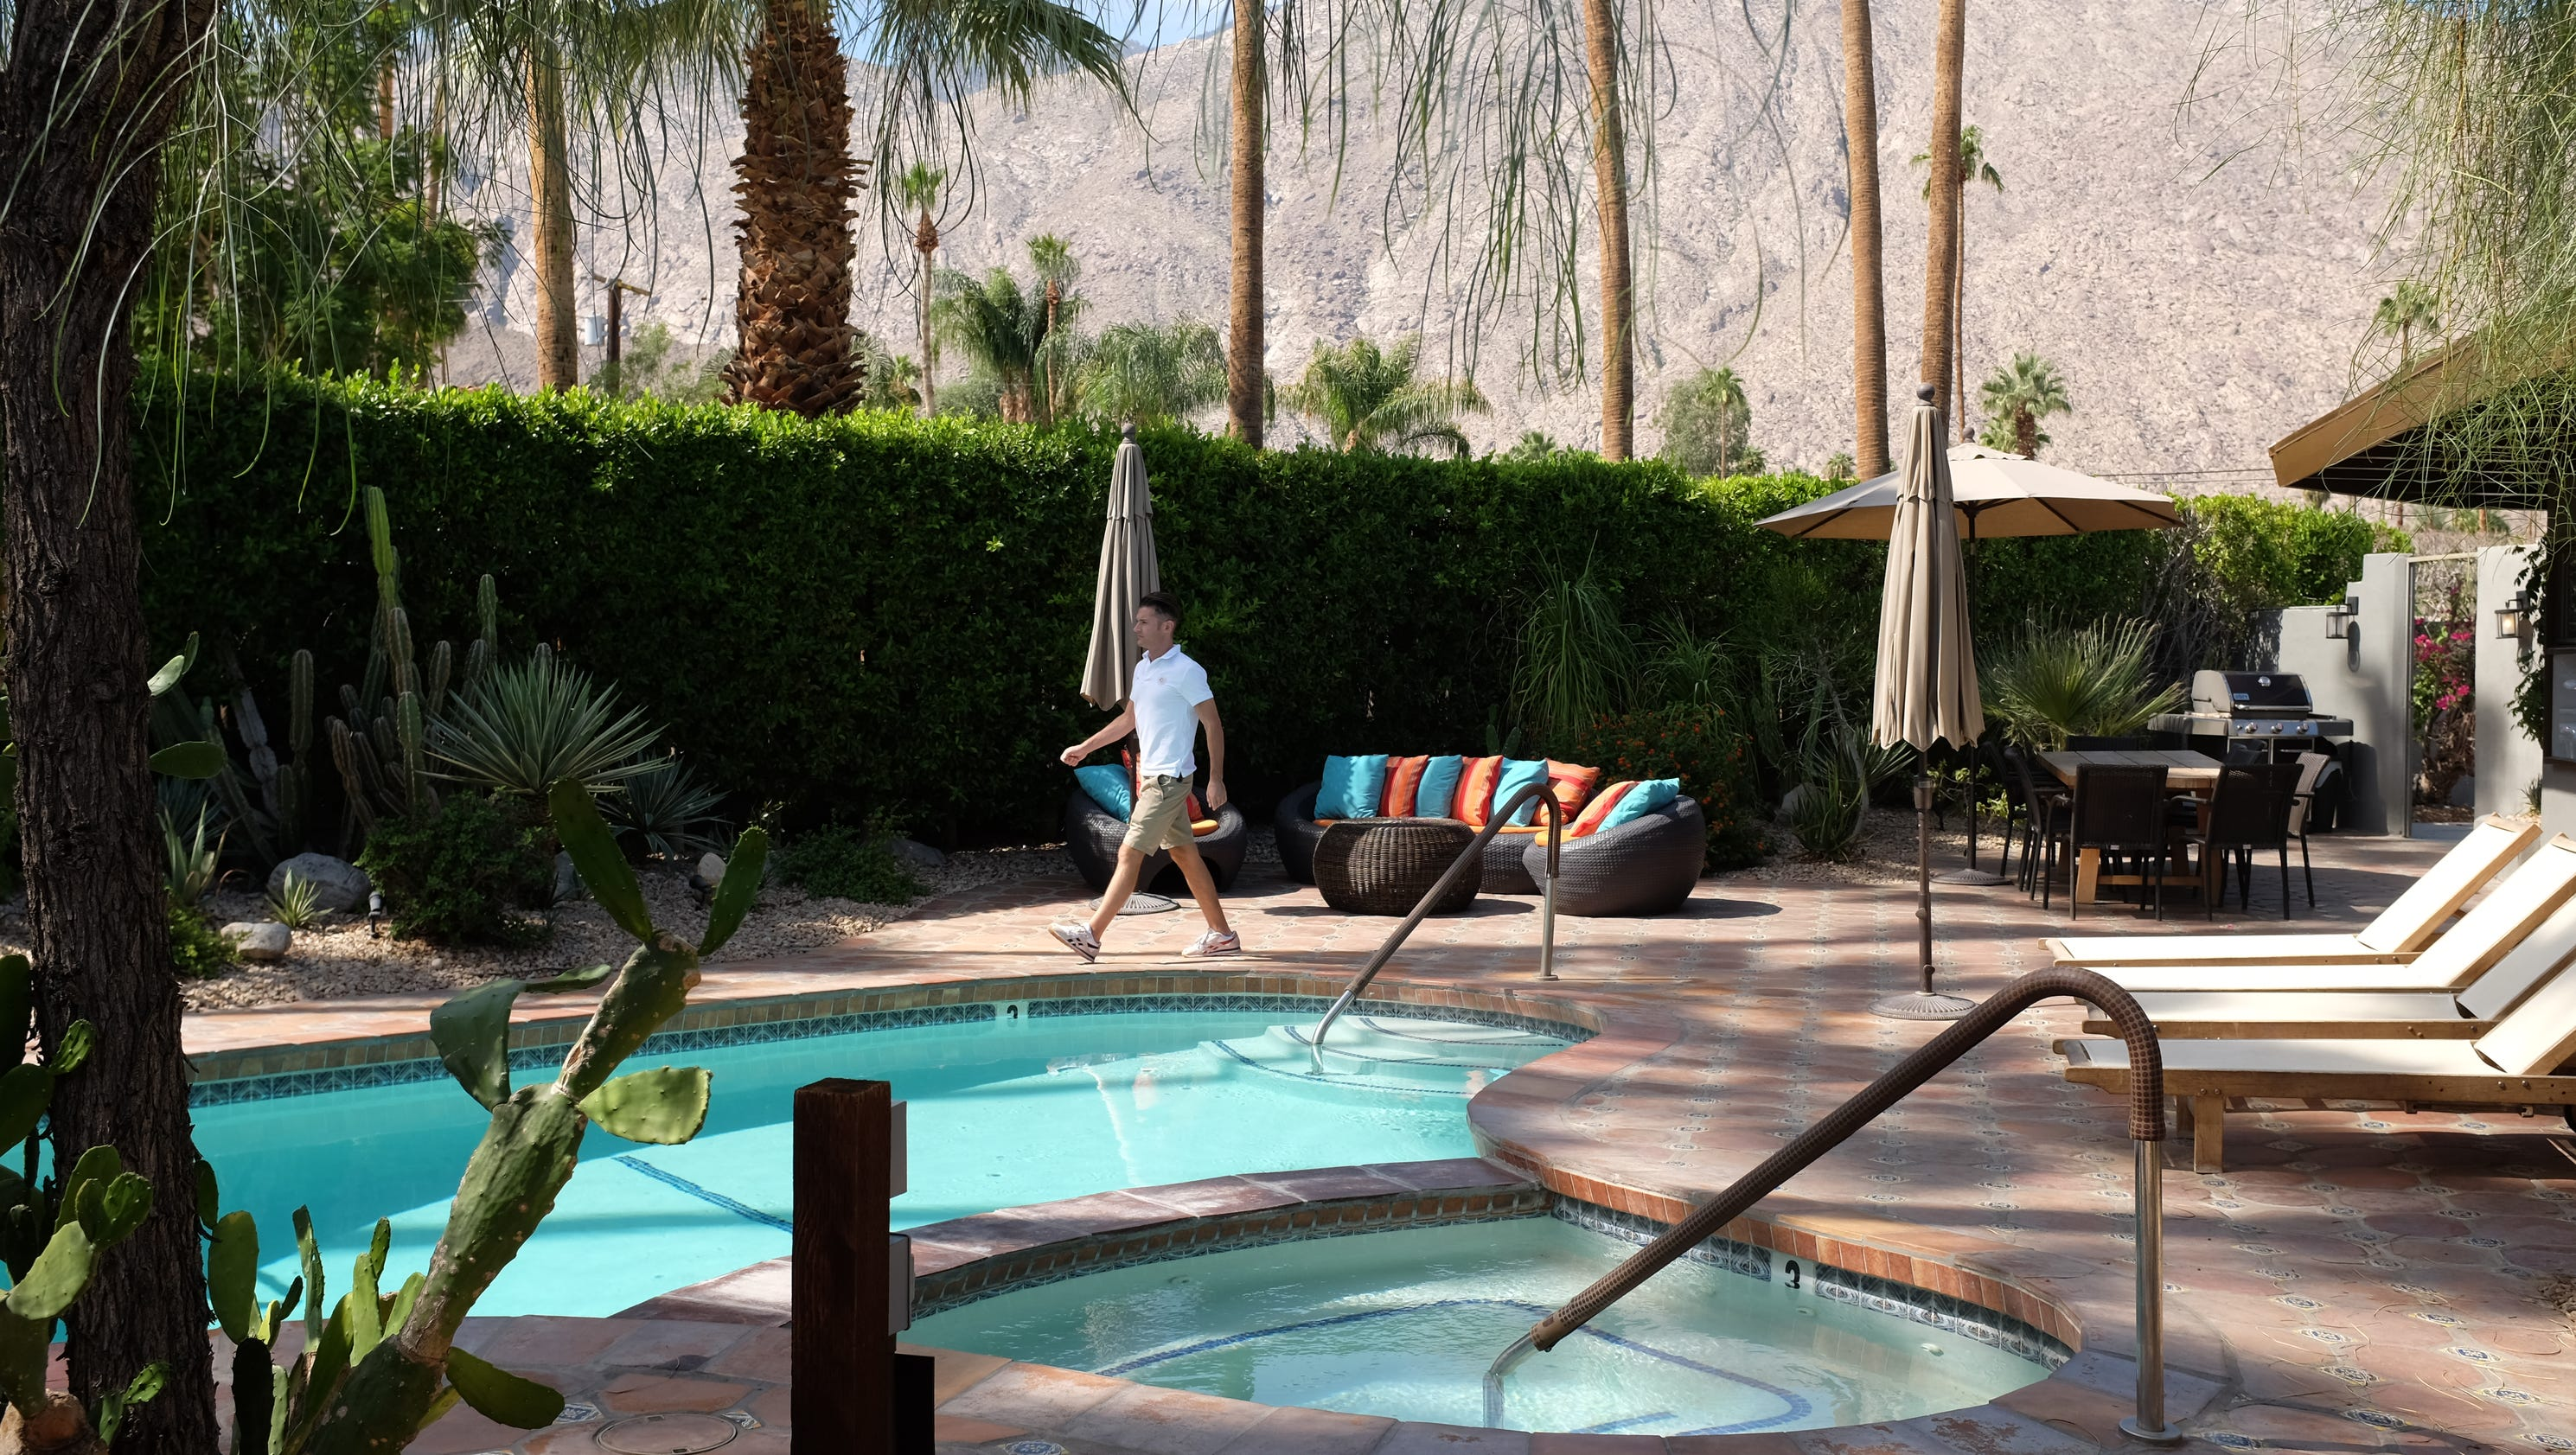 Long term rentals in palm springs ca - Long Term Rentals In Palm Springs Ca 50